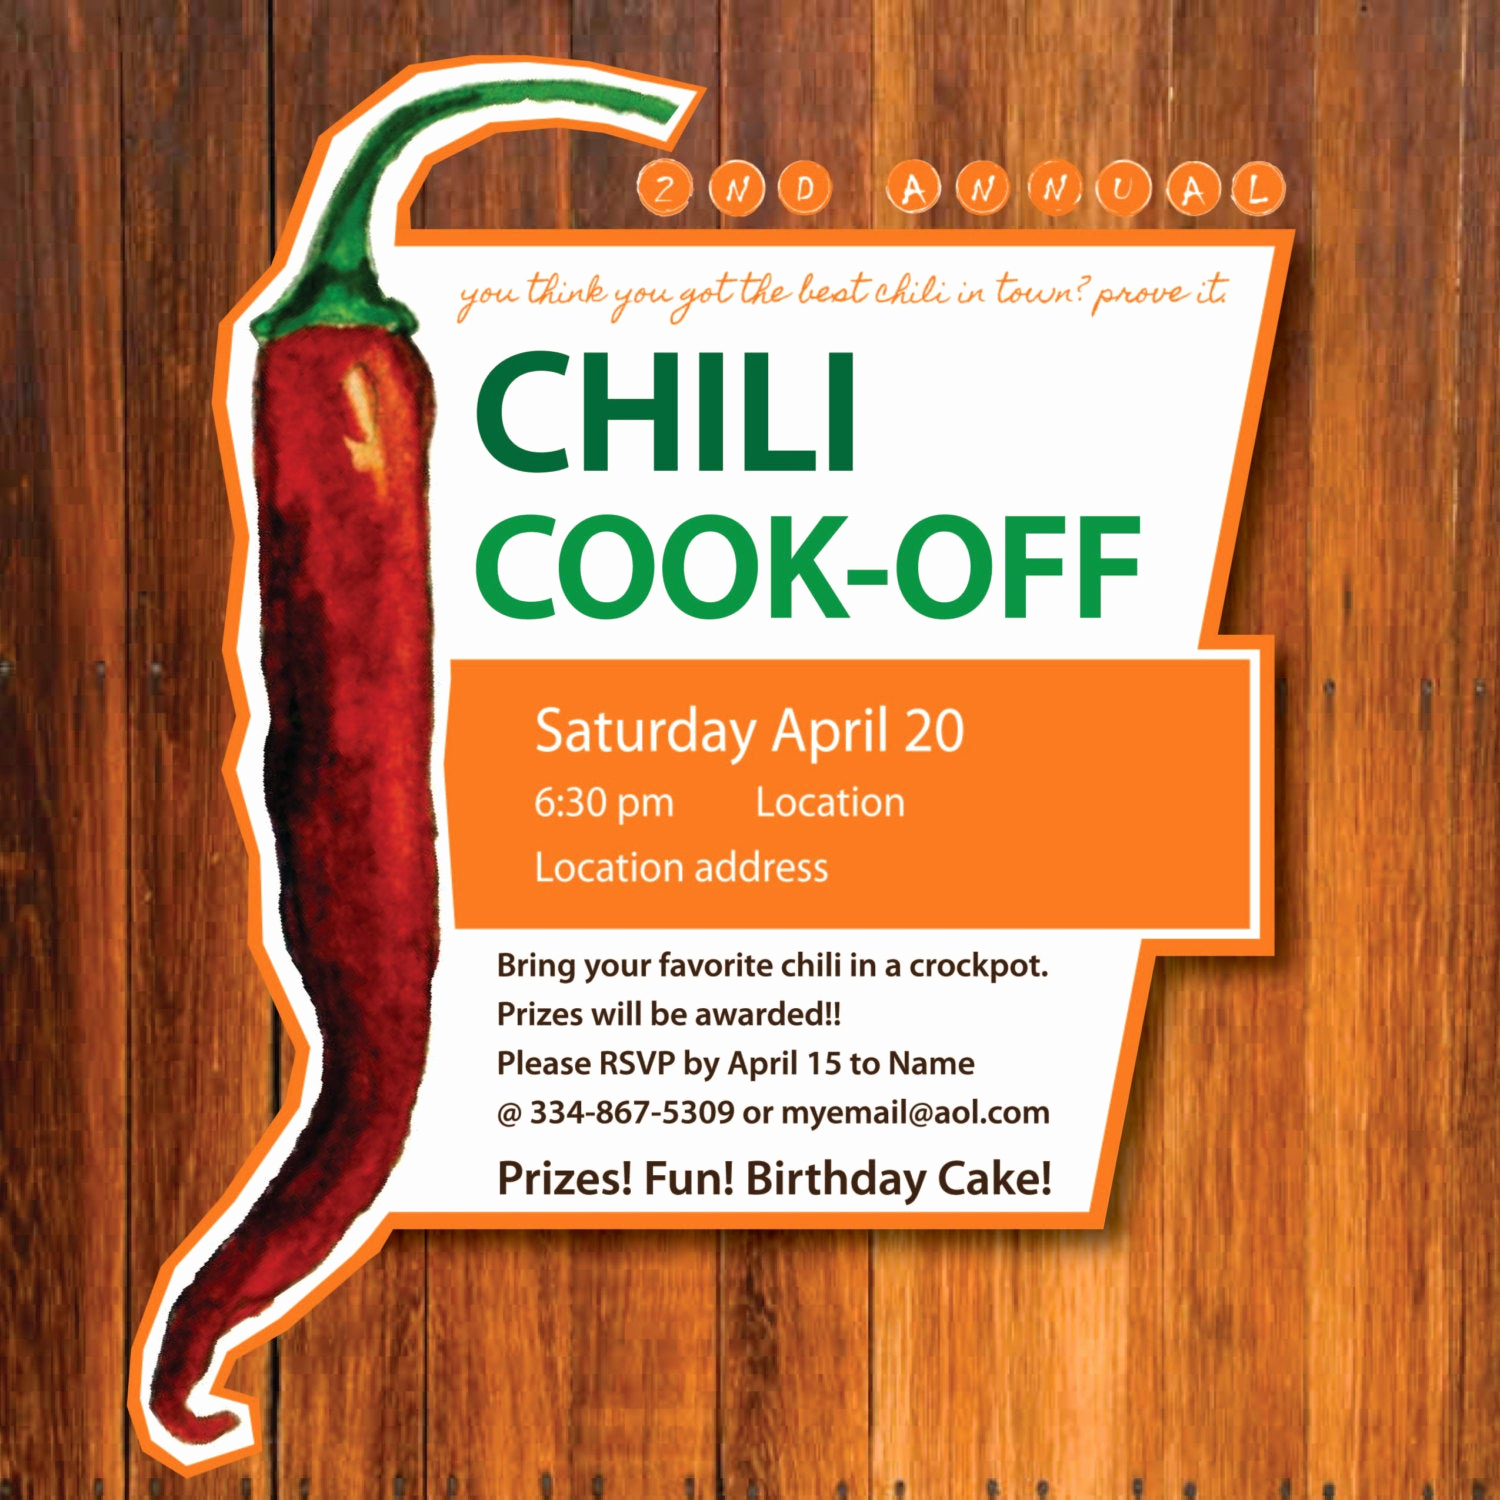 Chili Cook Off Invitation Awesome Chili Cook Off Invitation